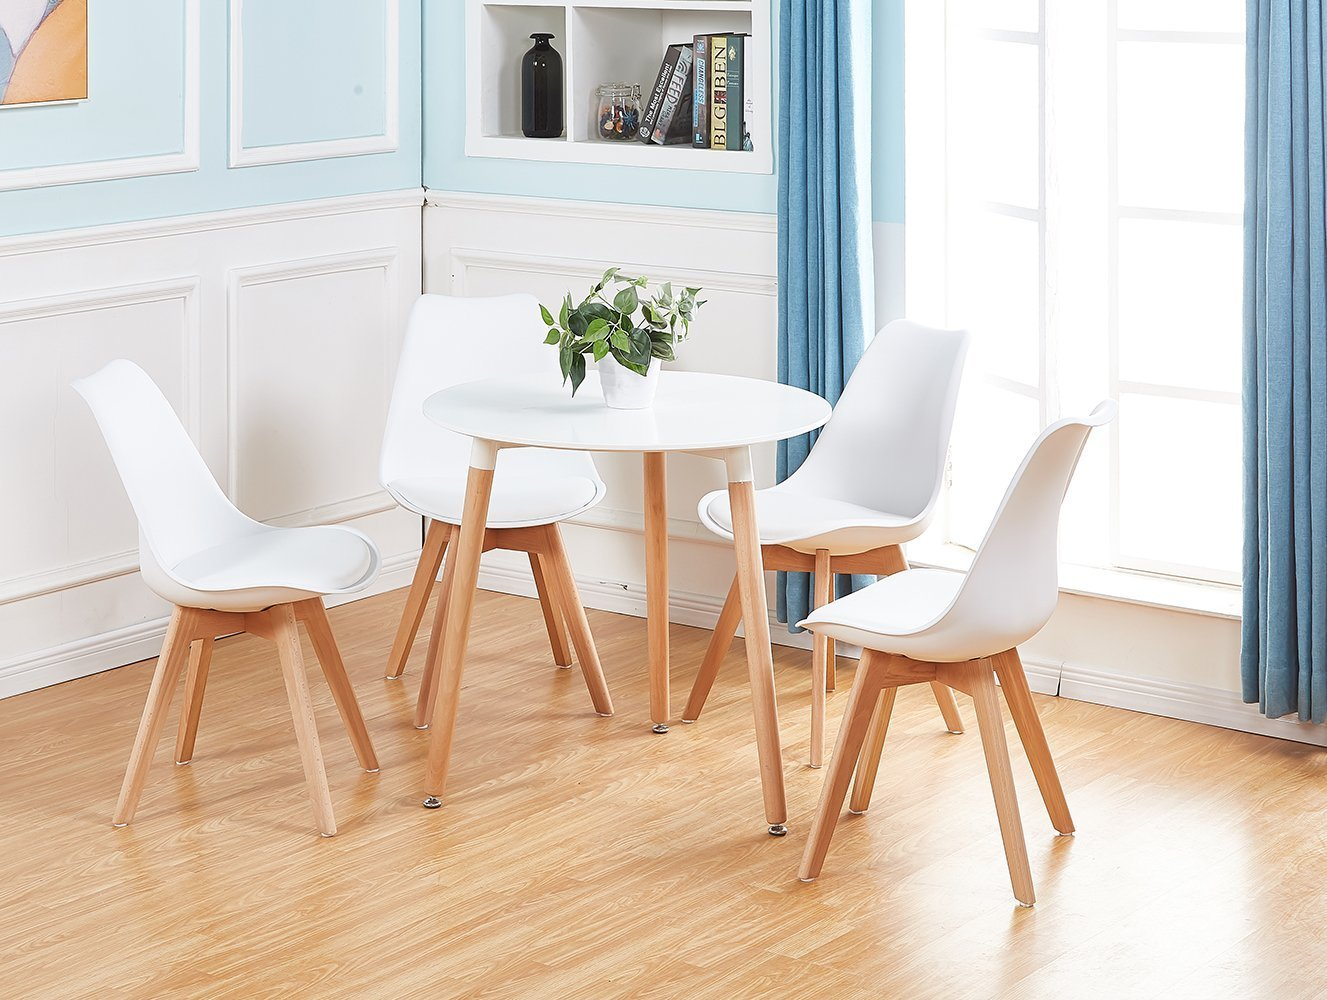 eggree table ronde salle manger scandinave table de cuisine moderne style nord ebay. Black Bedroom Furniture Sets. Home Design Ideas